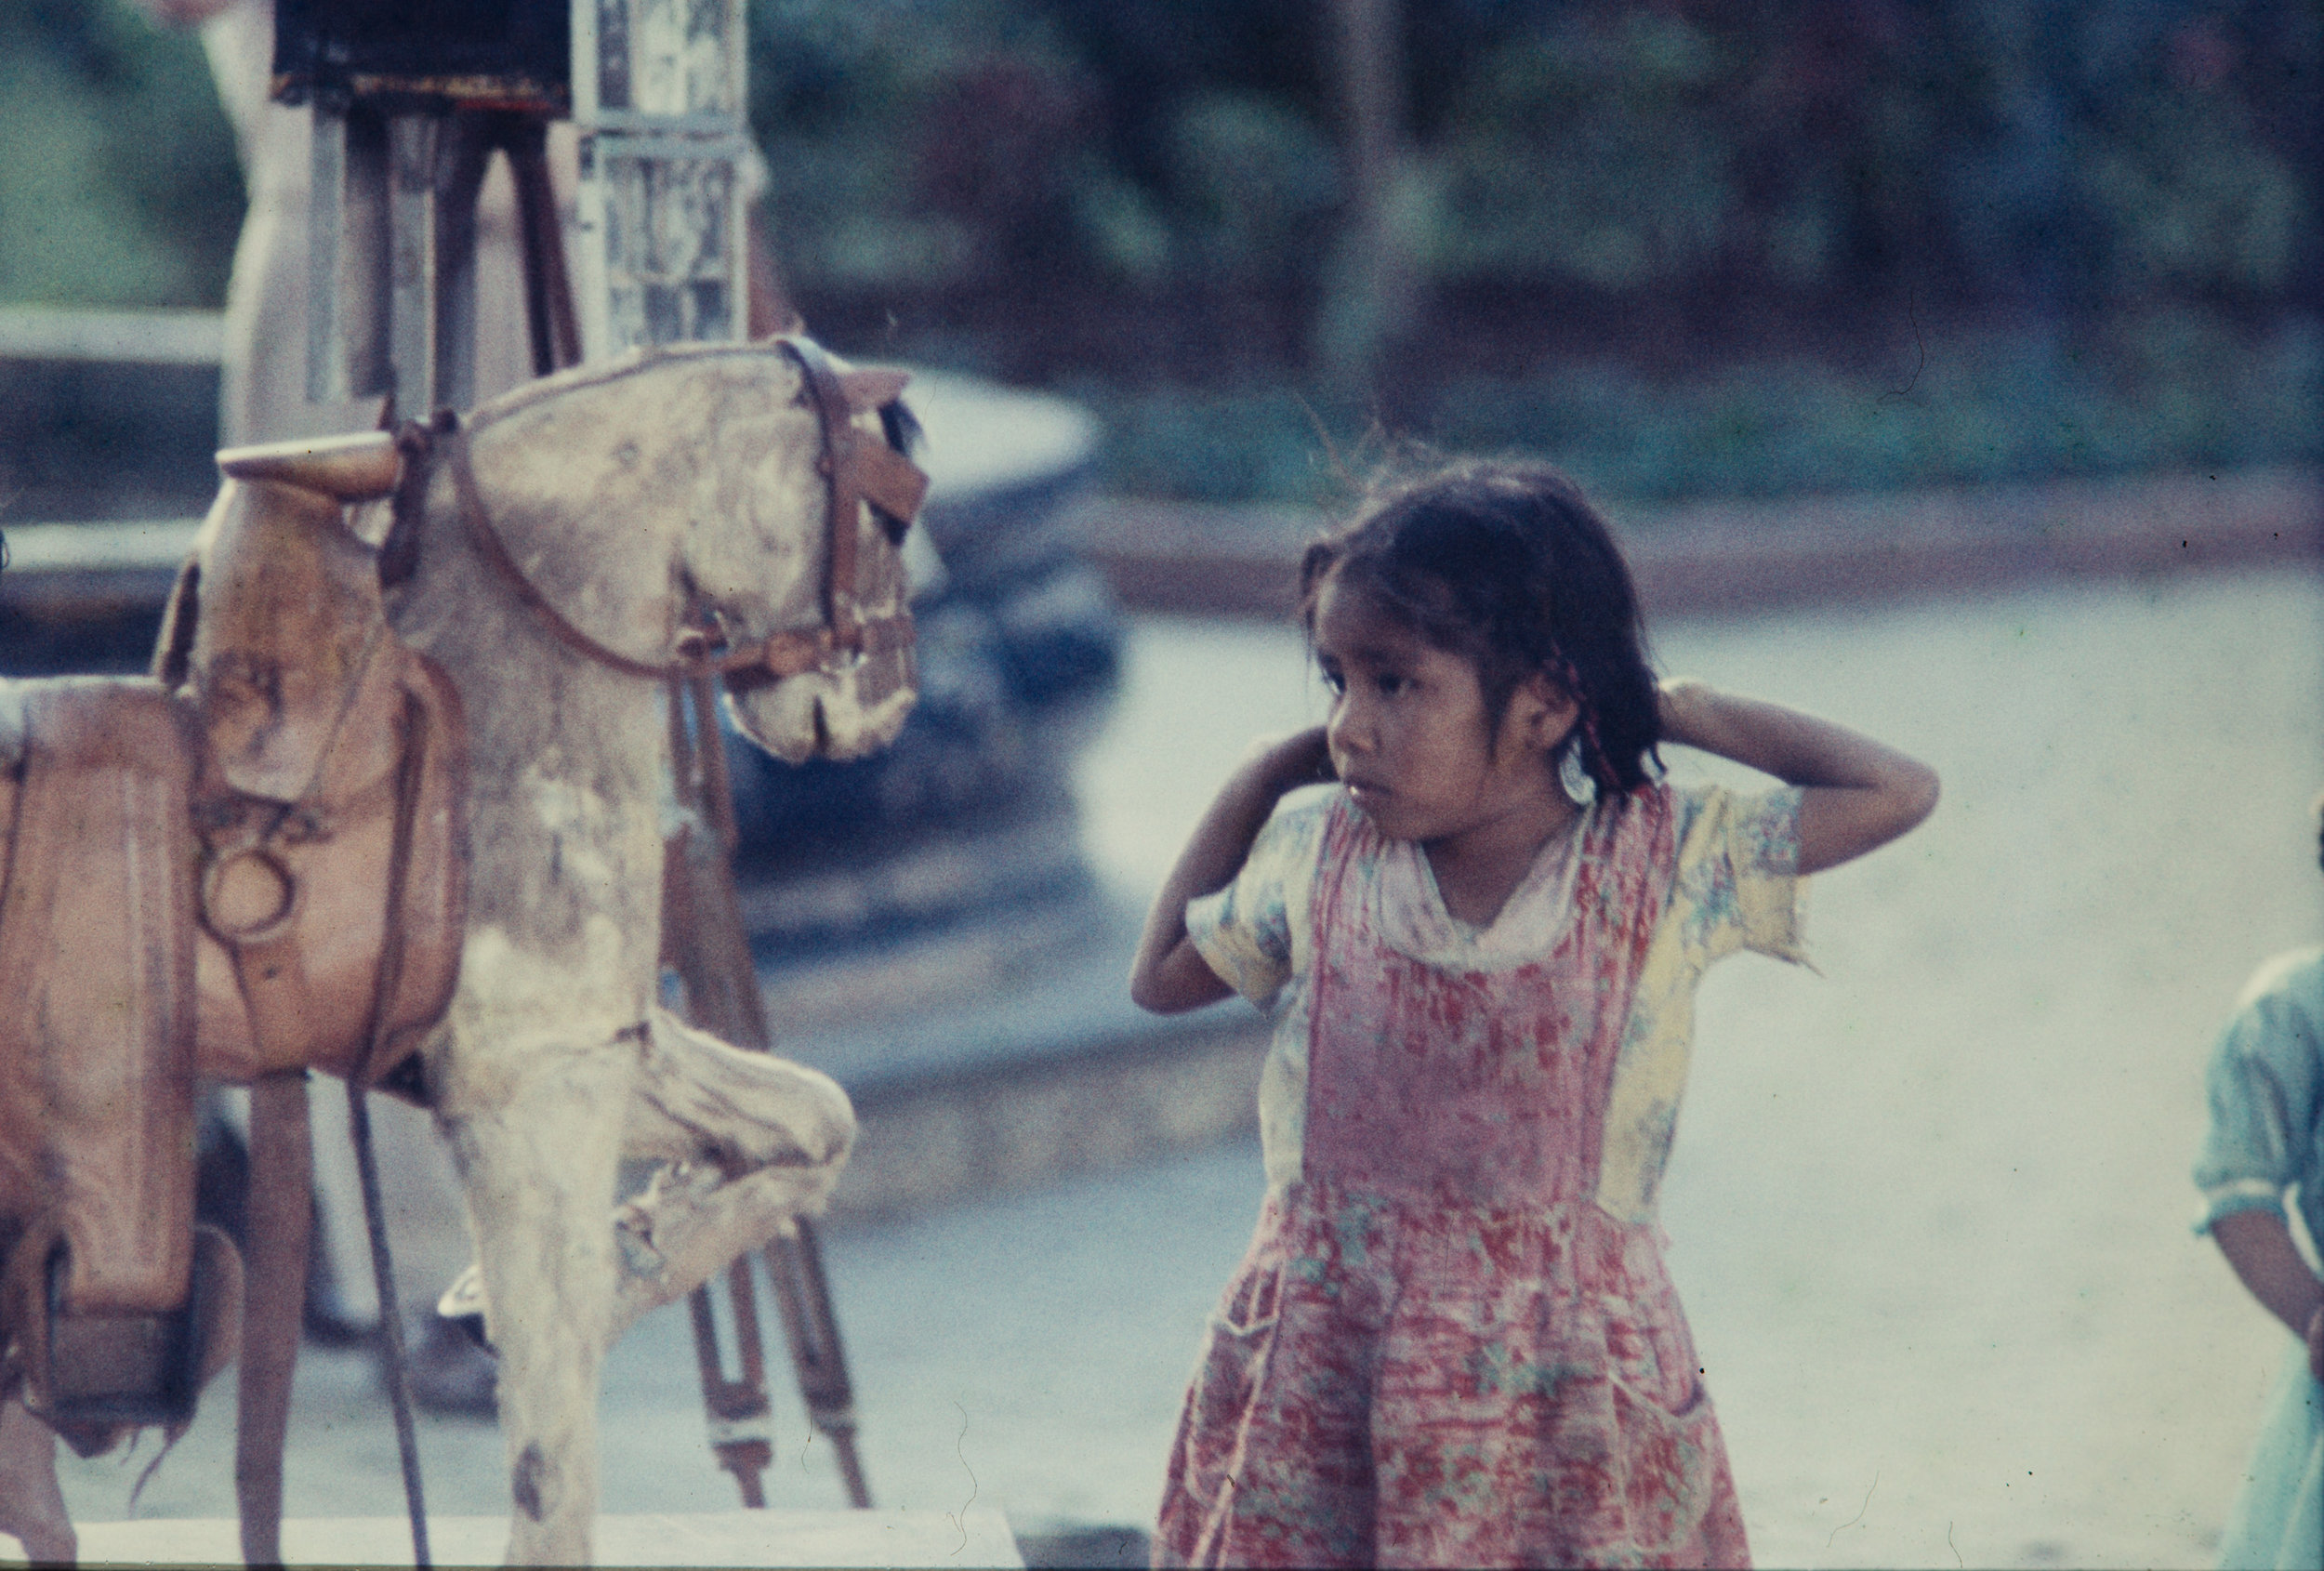 Young girl looking at toy horse, Mexico, 1957